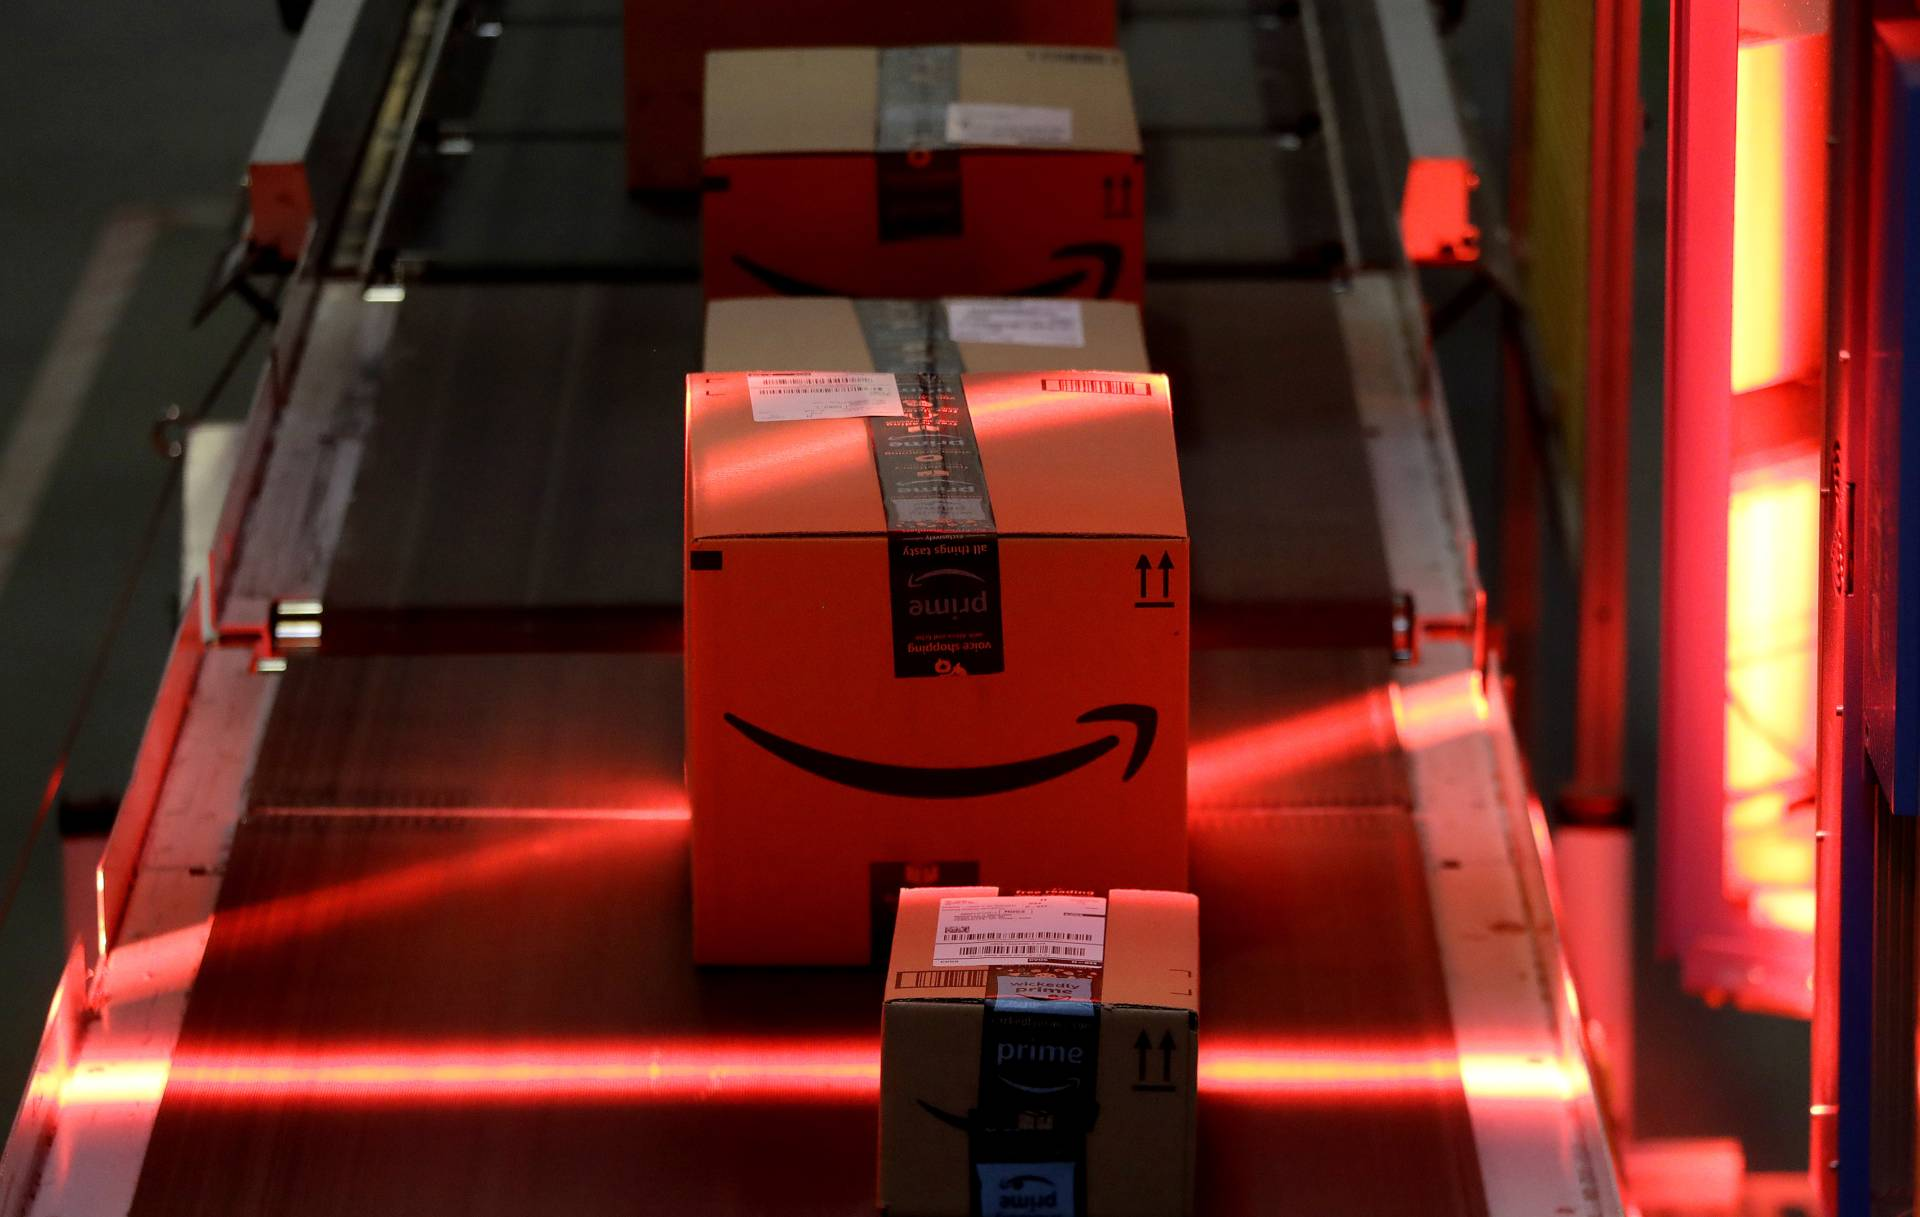 Amazon already had a chance to test out one-day shipping during its Prime Day event in July, which has become one of the company's busiest shopping events.